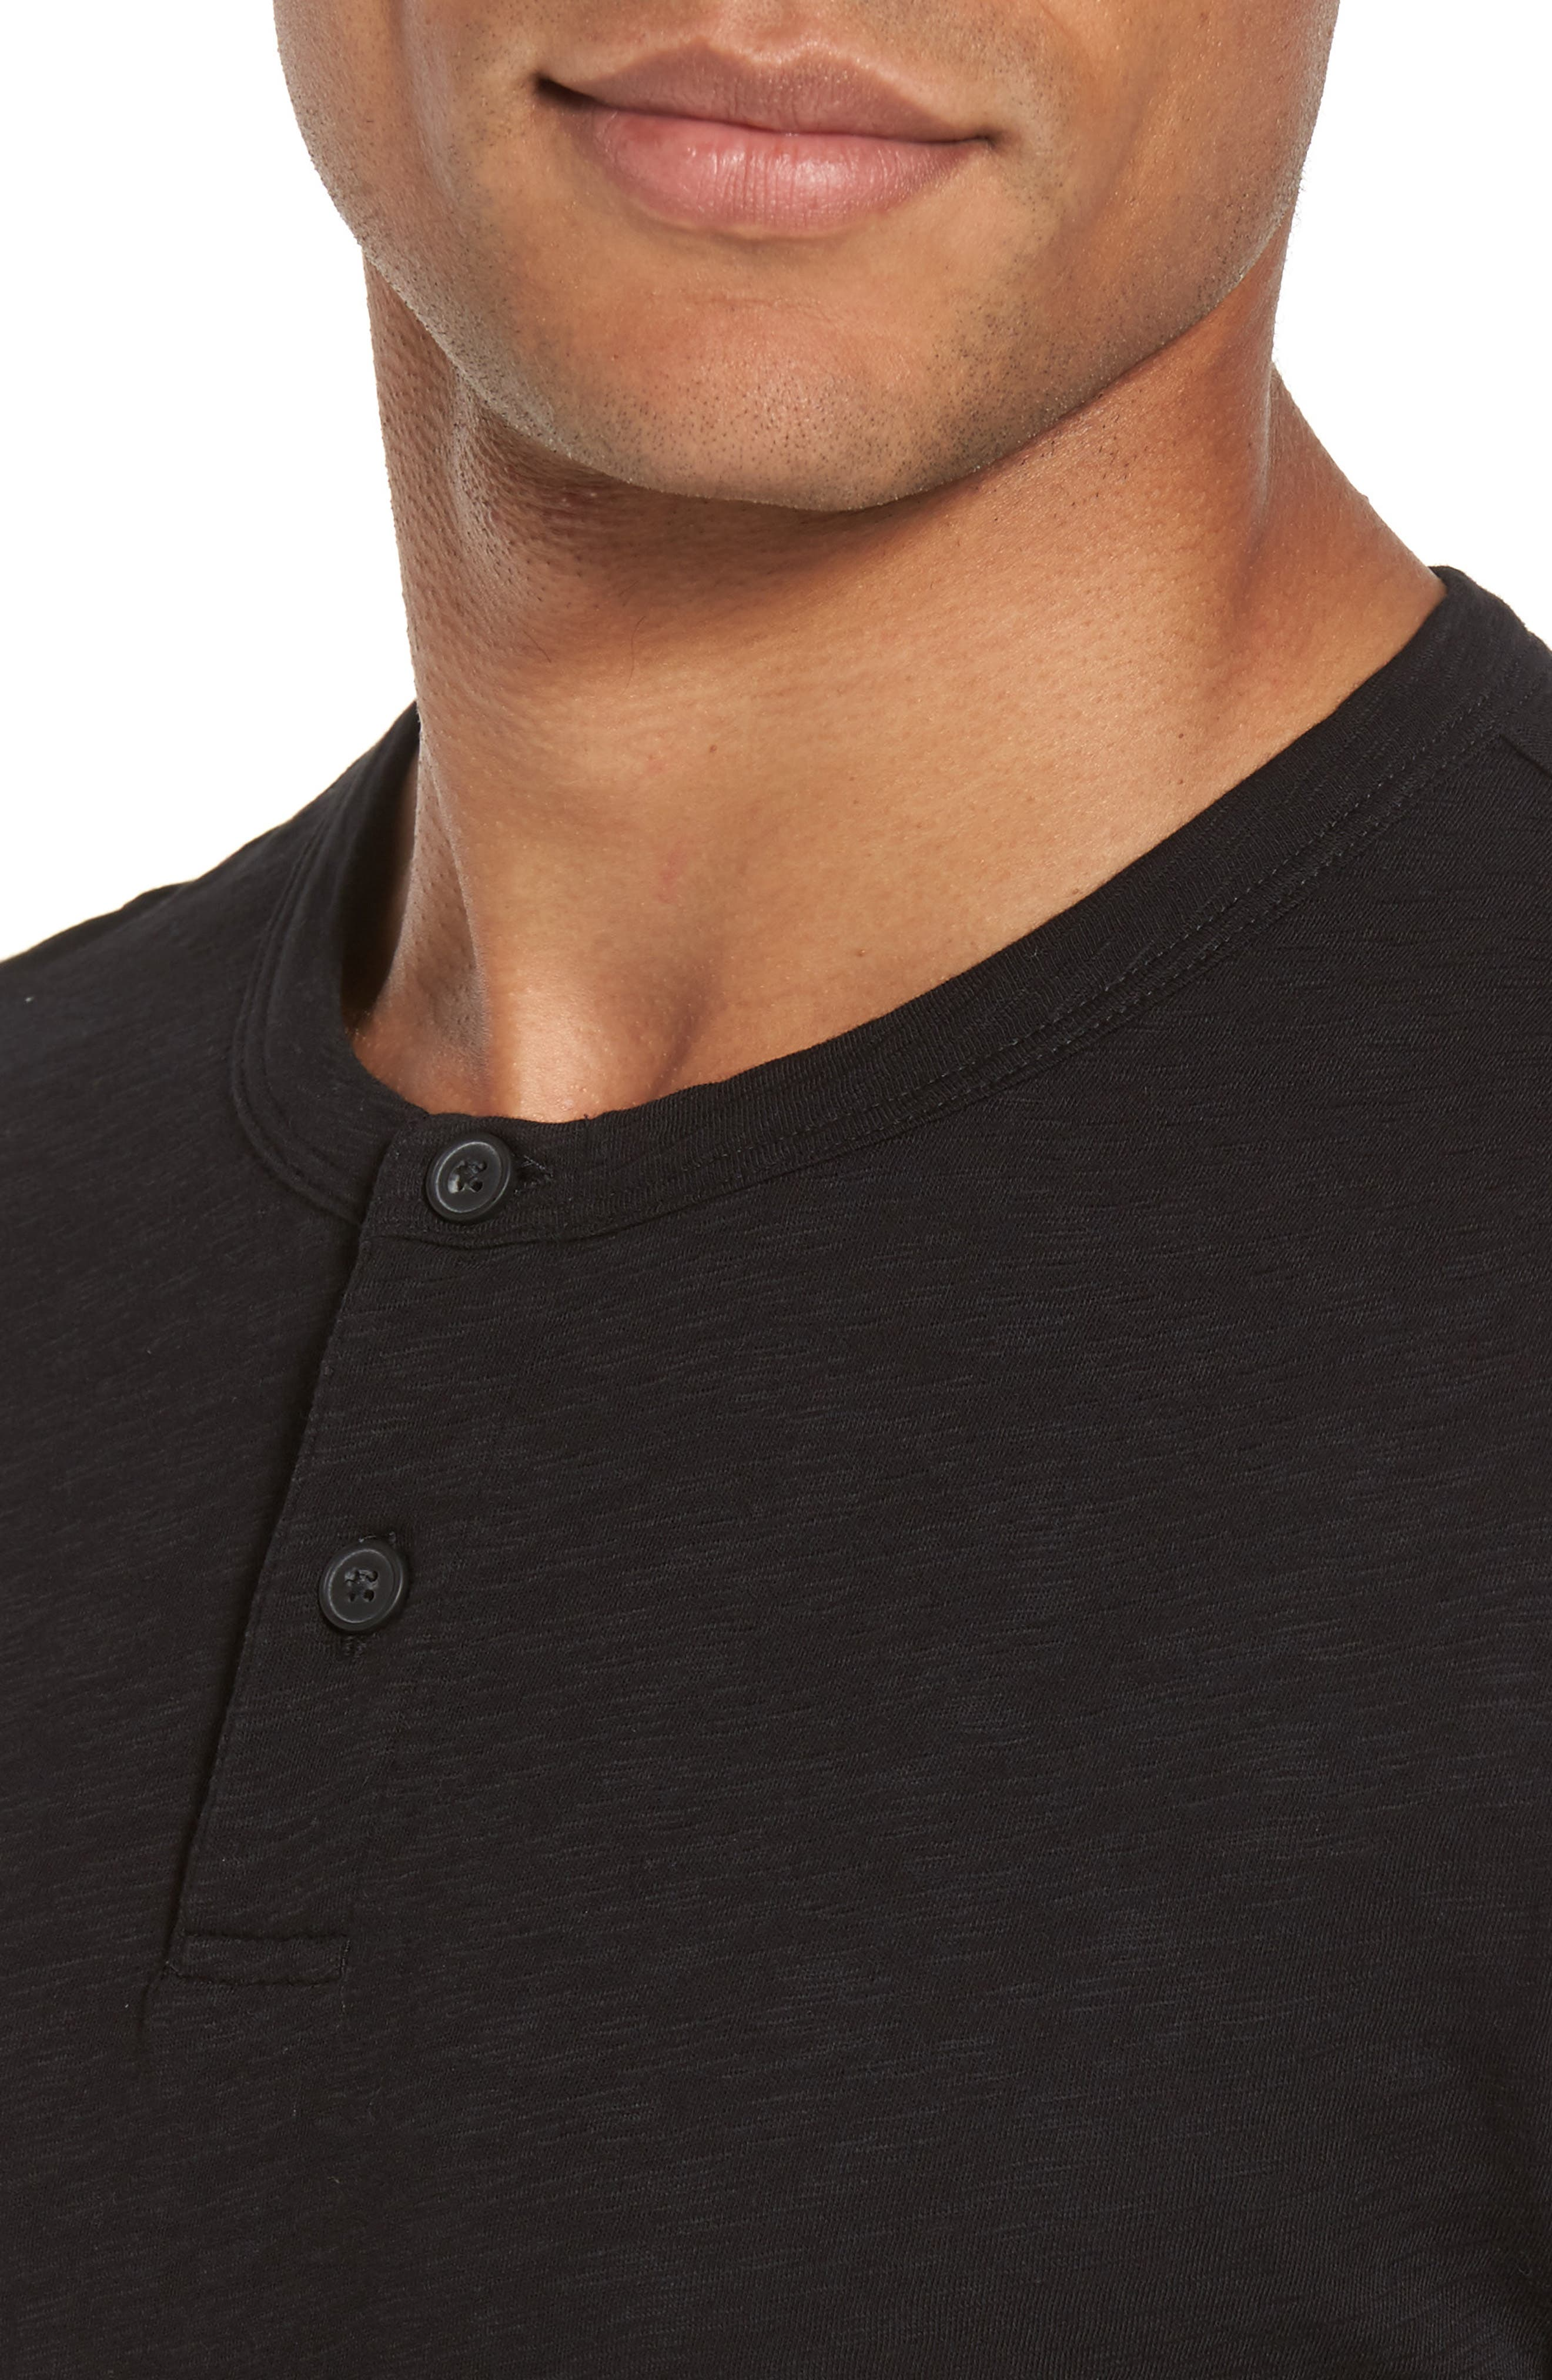 Gaskell Henley T-Shirt,                             Alternate thumbnail 4, color,                             Black